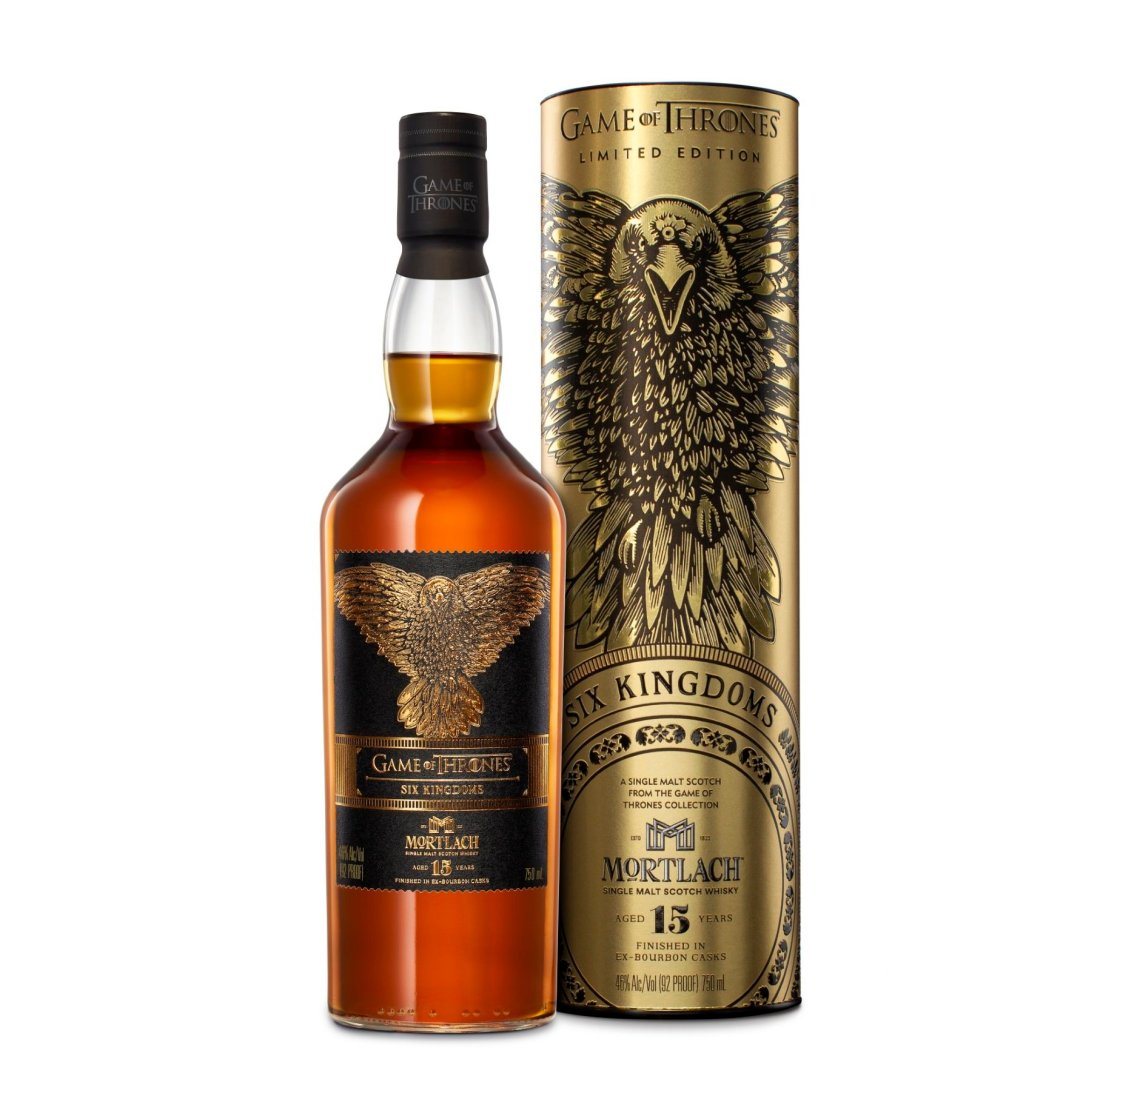 Game of Thrones Mortlach Six Kingdoms 15 Years Old